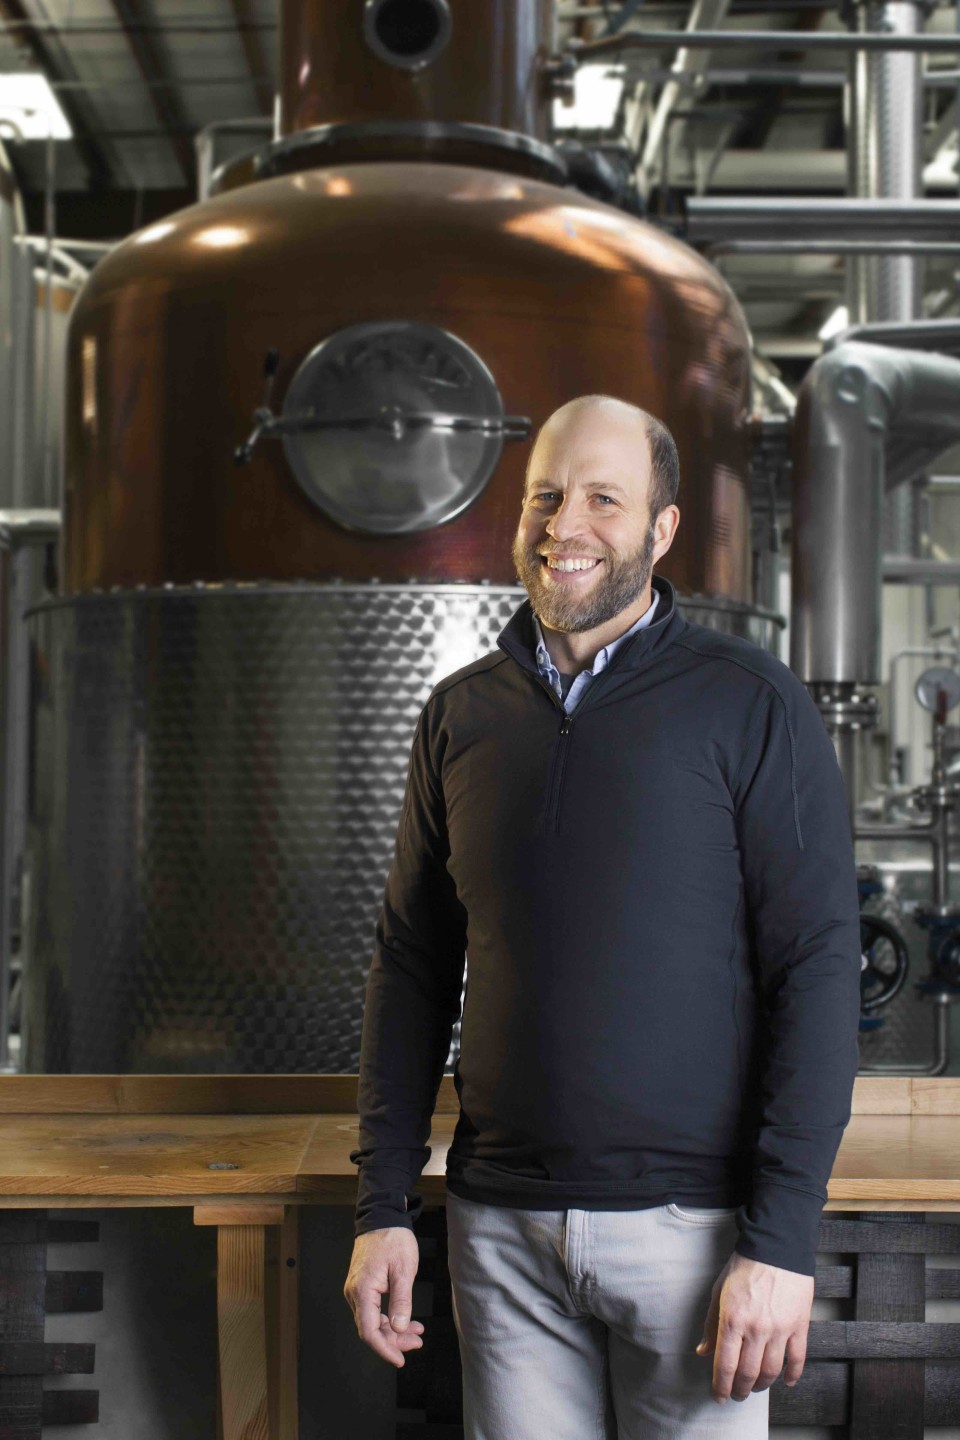 Brian Ellison was inspired to start Death's Door Spirits as a way to support agriculture on Wisconsin's Washington Island. The company's gin has led growth, and Death's Door now employs 19 people.